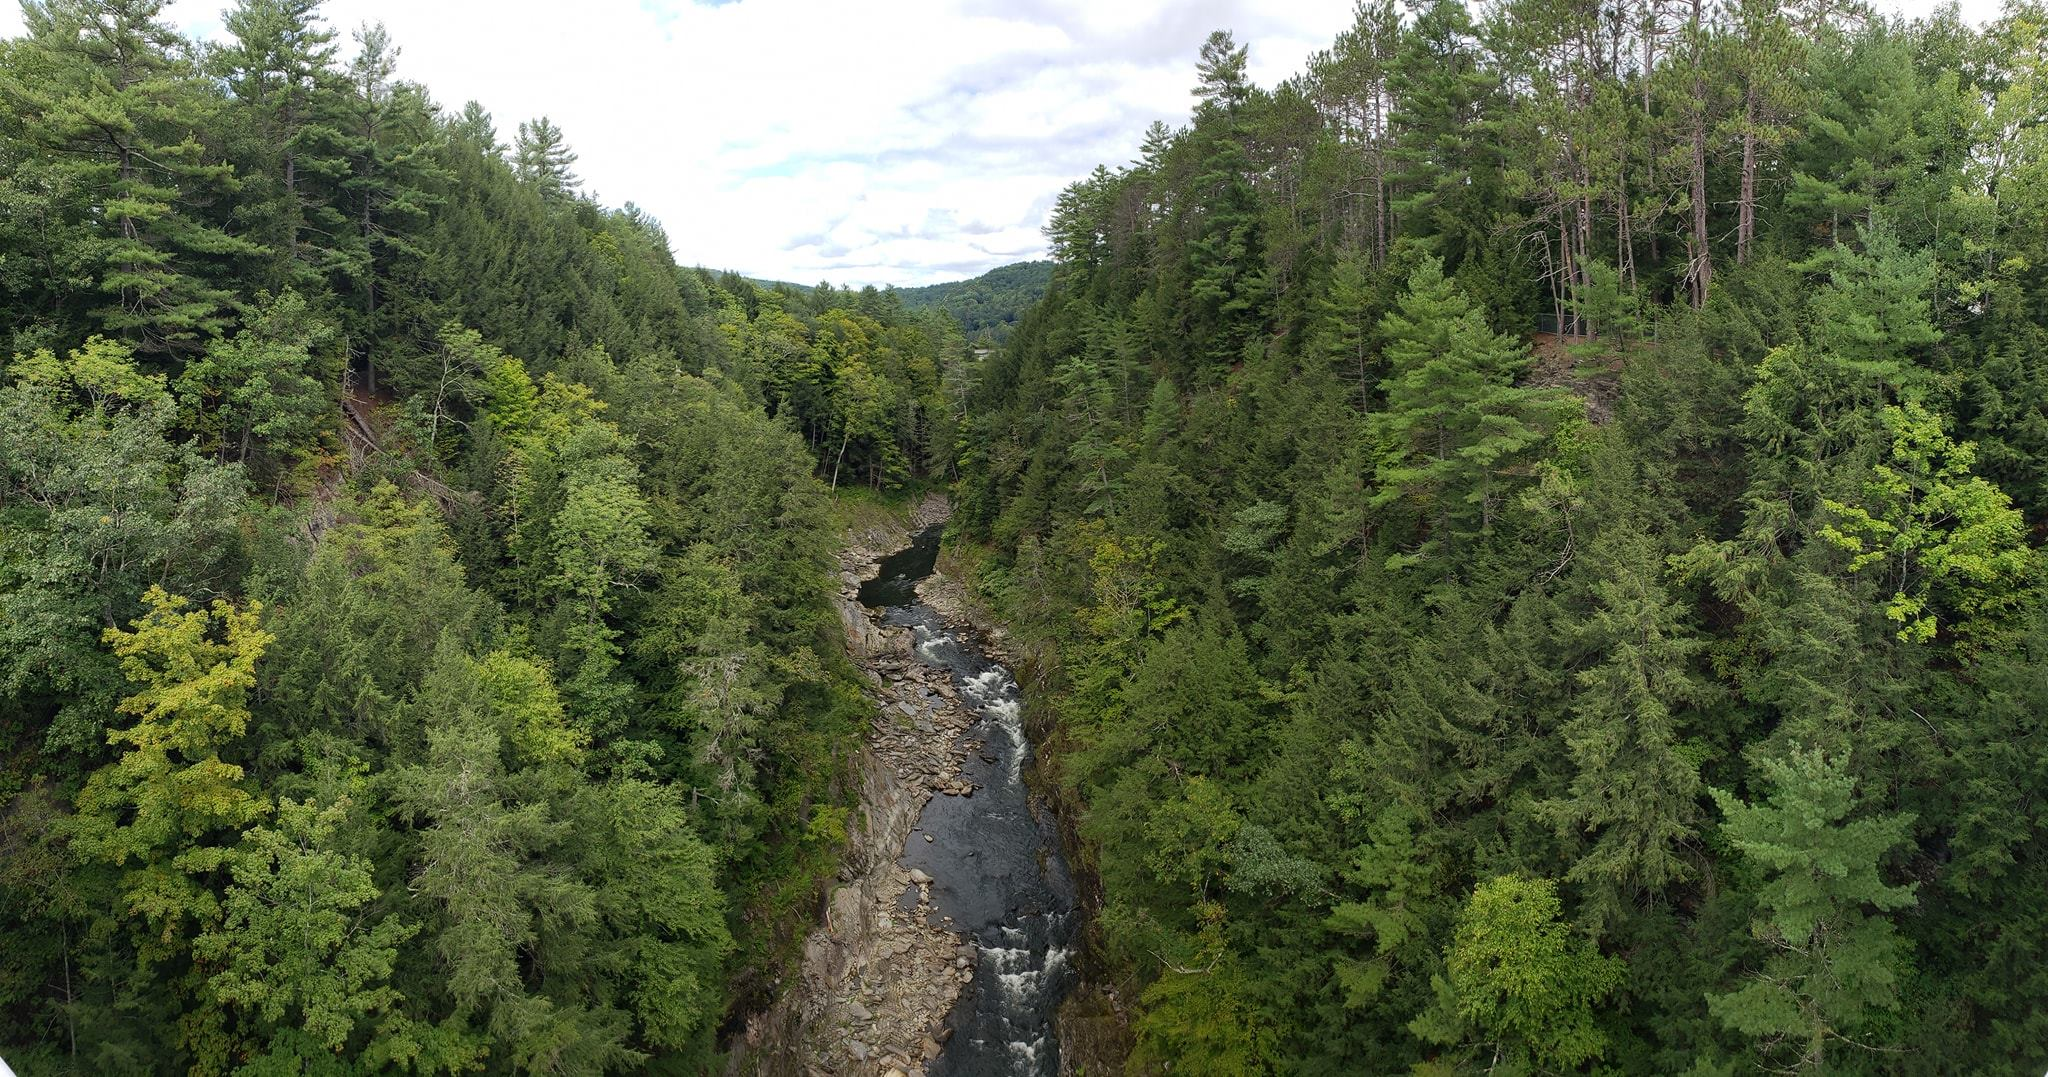 Queechee gorge, a nice little pitstop we made on our way to the lodge